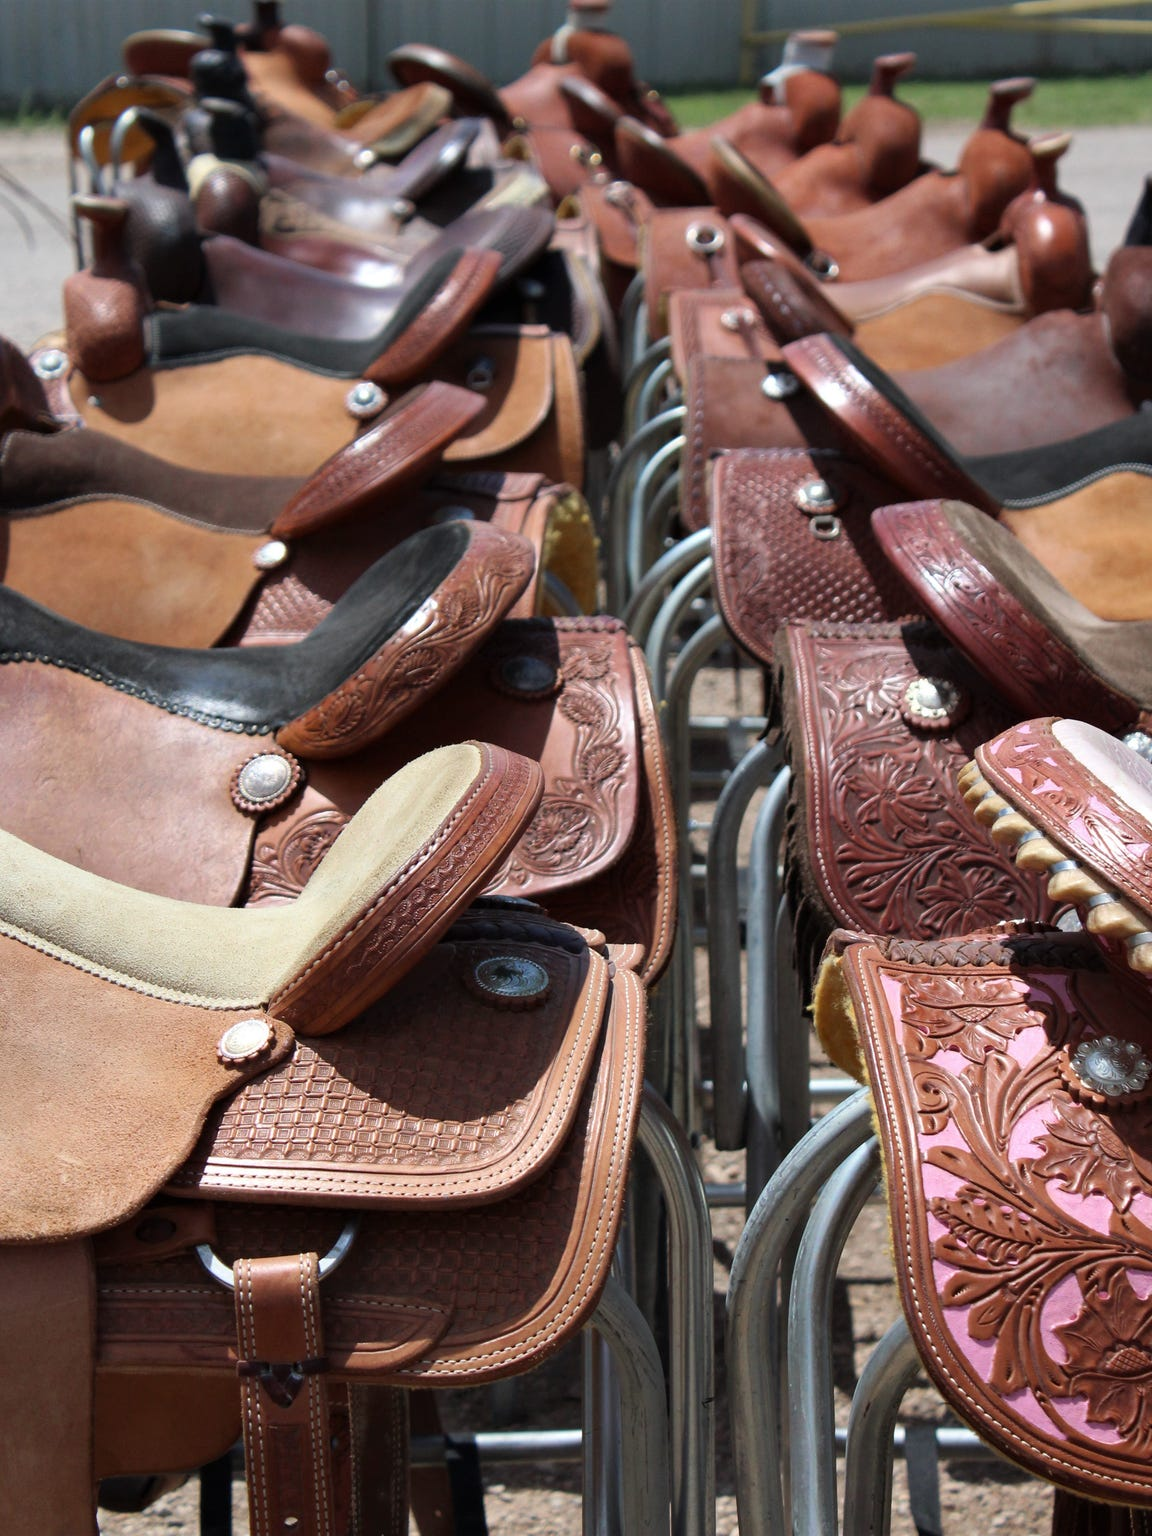 Next time your saddle up, it could be on a new one purchased at the Western Heritage Classic.